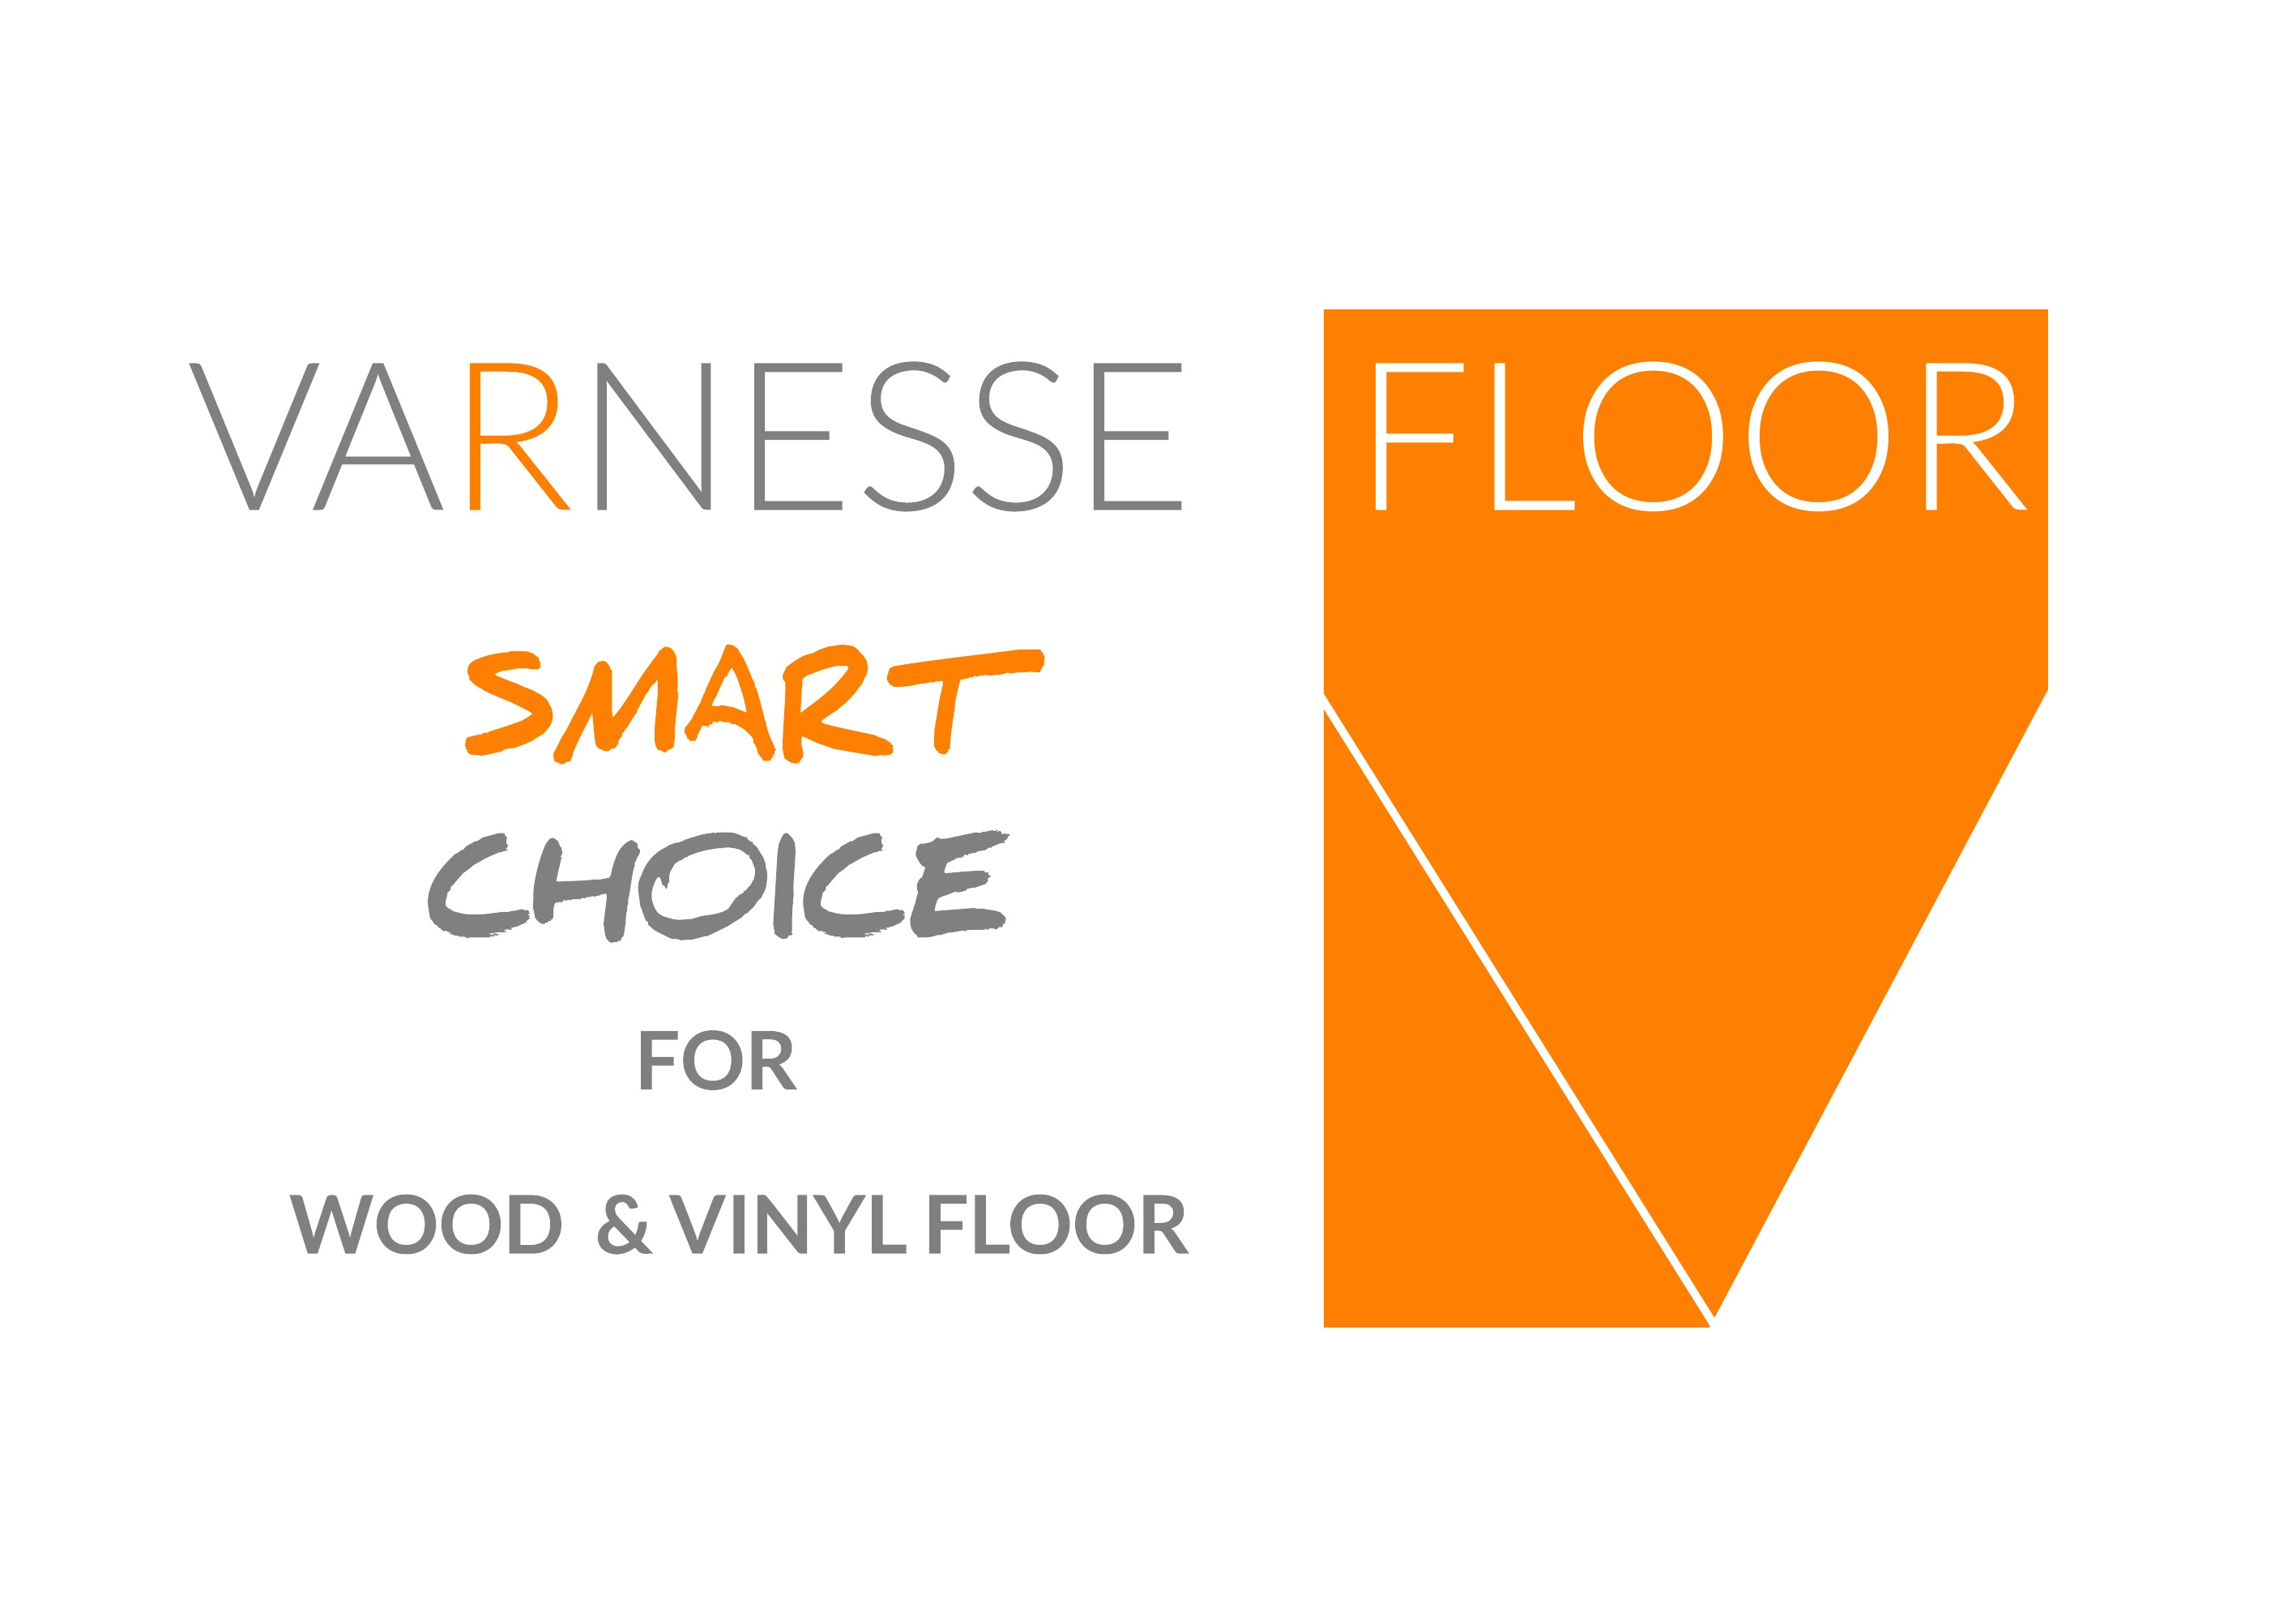 Varnesse Floor